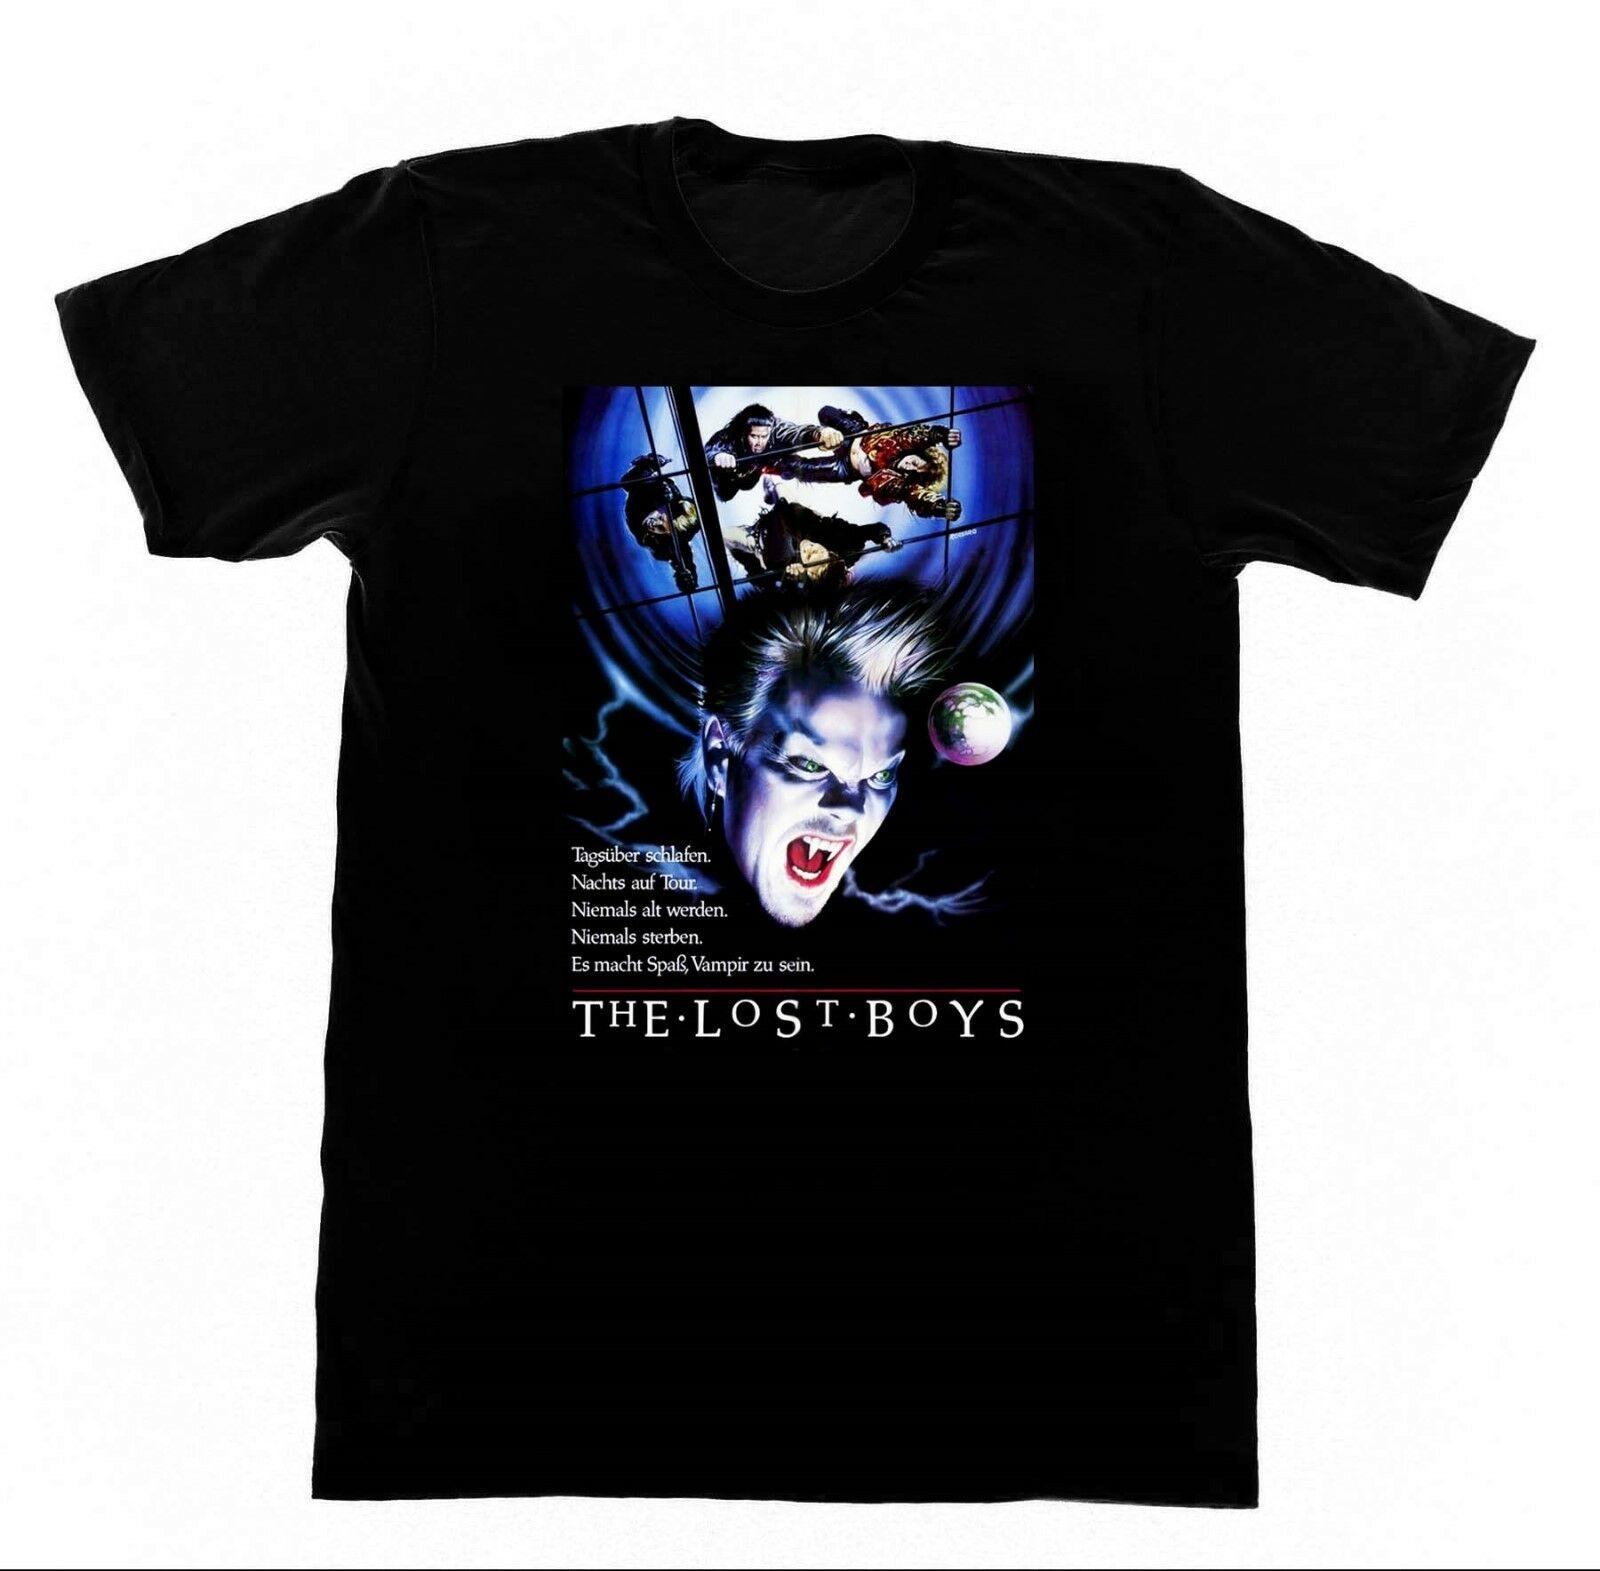 The Lost Boys T-Shirt TEDESCO IMPORT 200 T-Shirt Cult Film Vampiro Dracula GothFunny spedizione gratuita Unisex Casual top